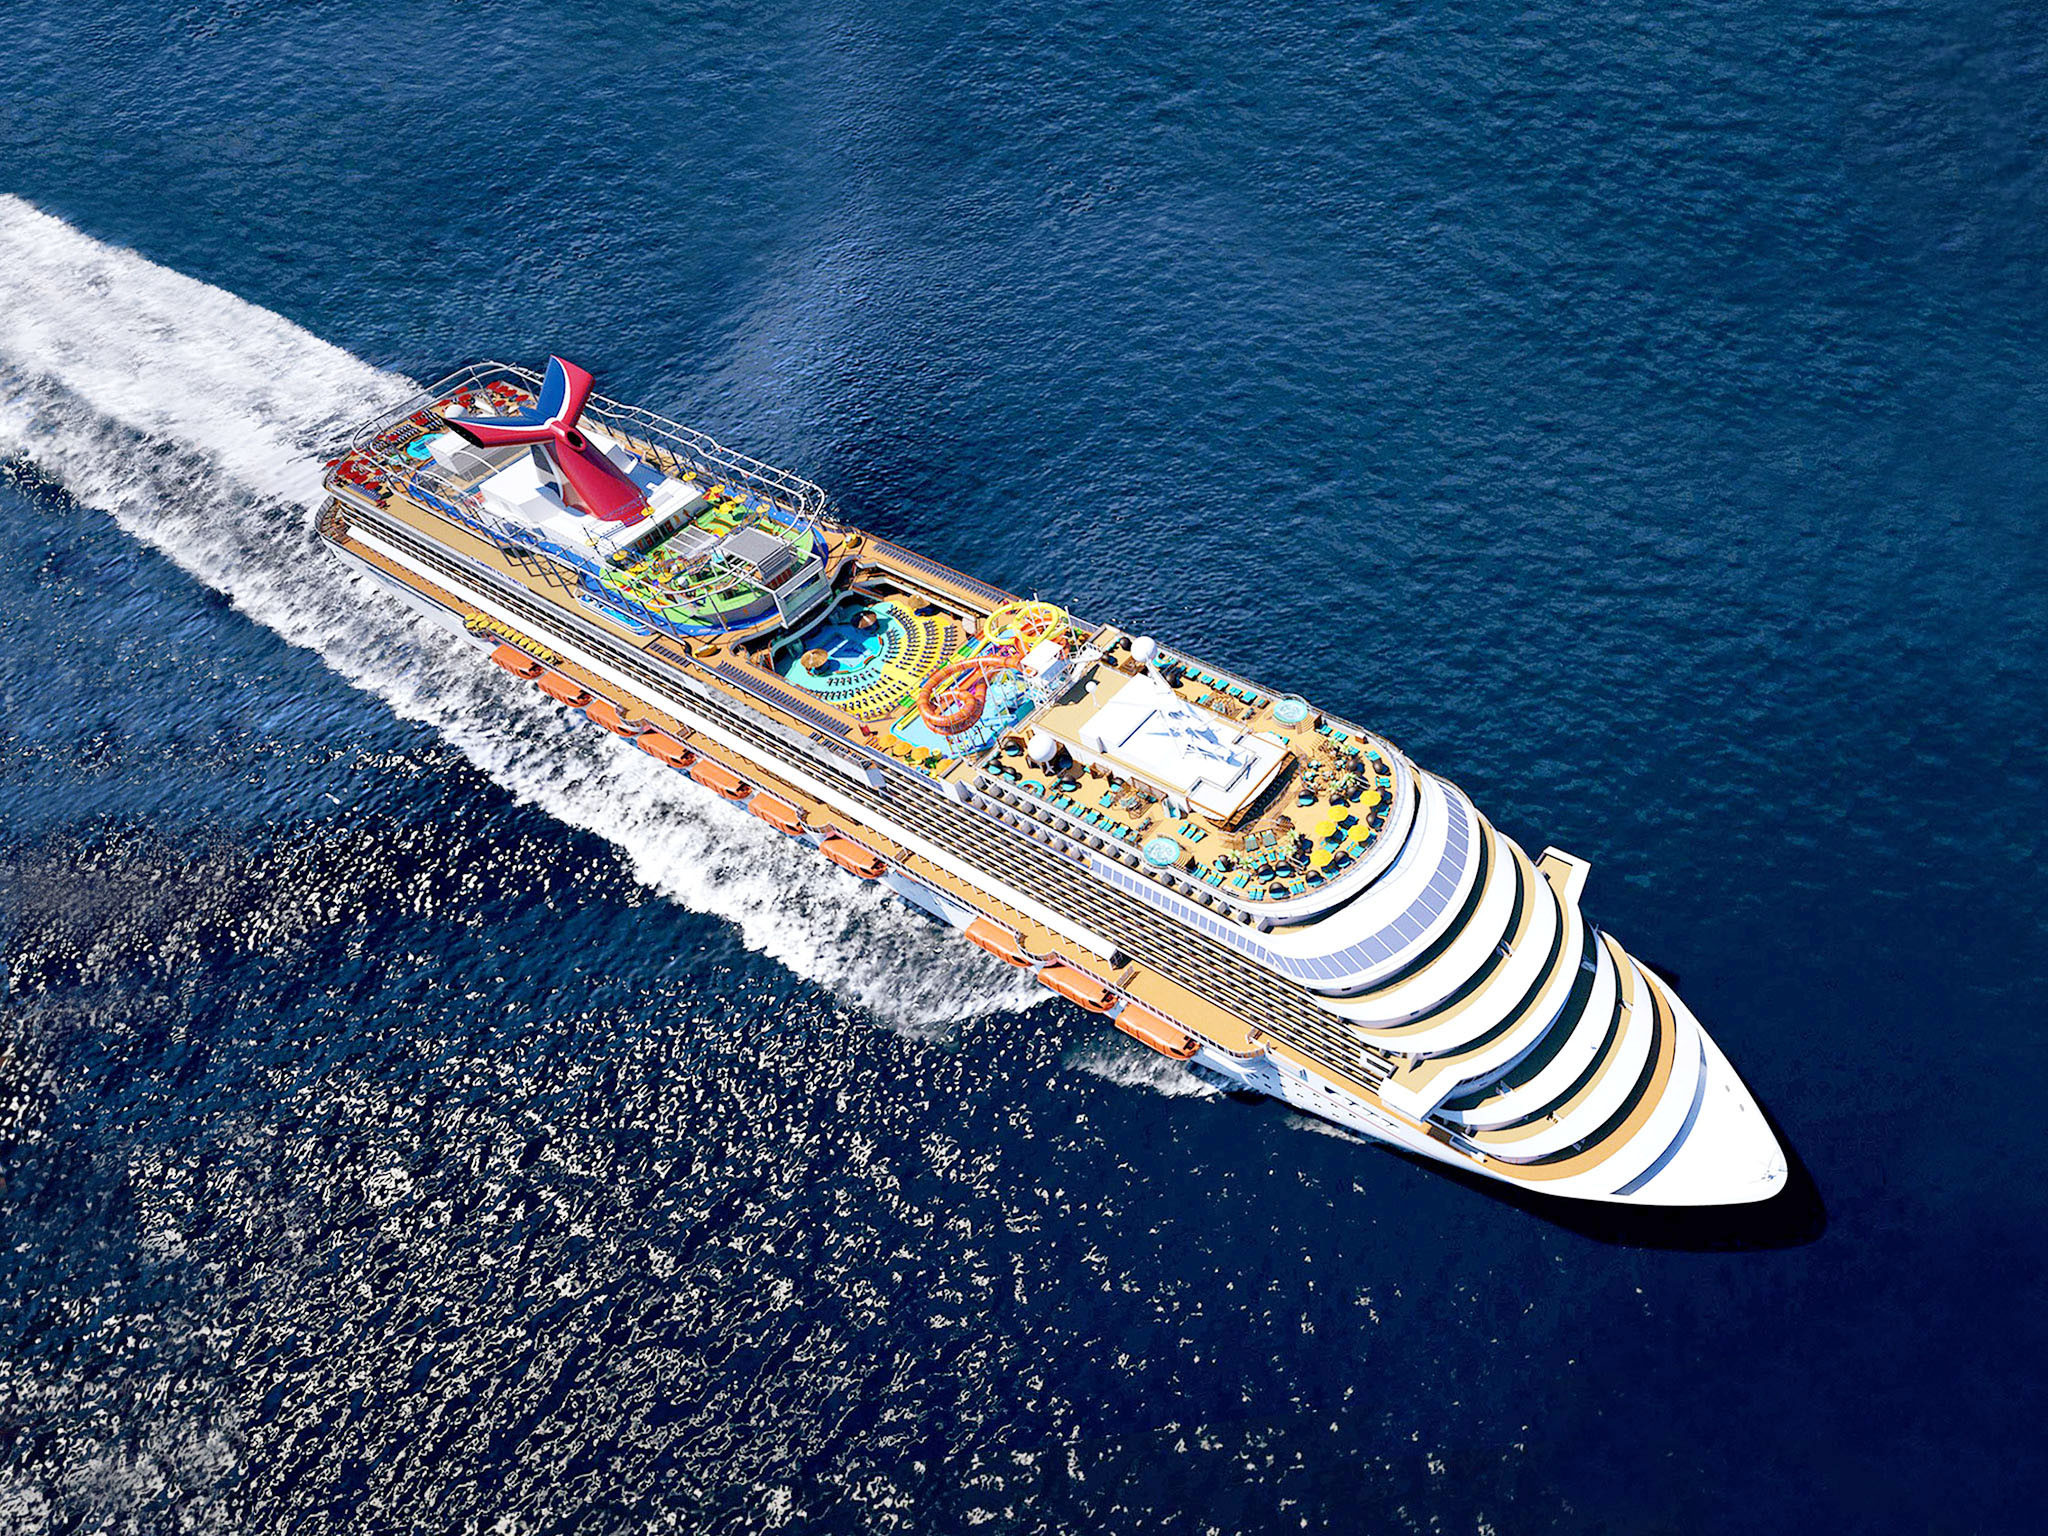 Carnival Cruise Line To Build Two New Giant Ships Orlando Sentinel - How long is the carnival cruise ship